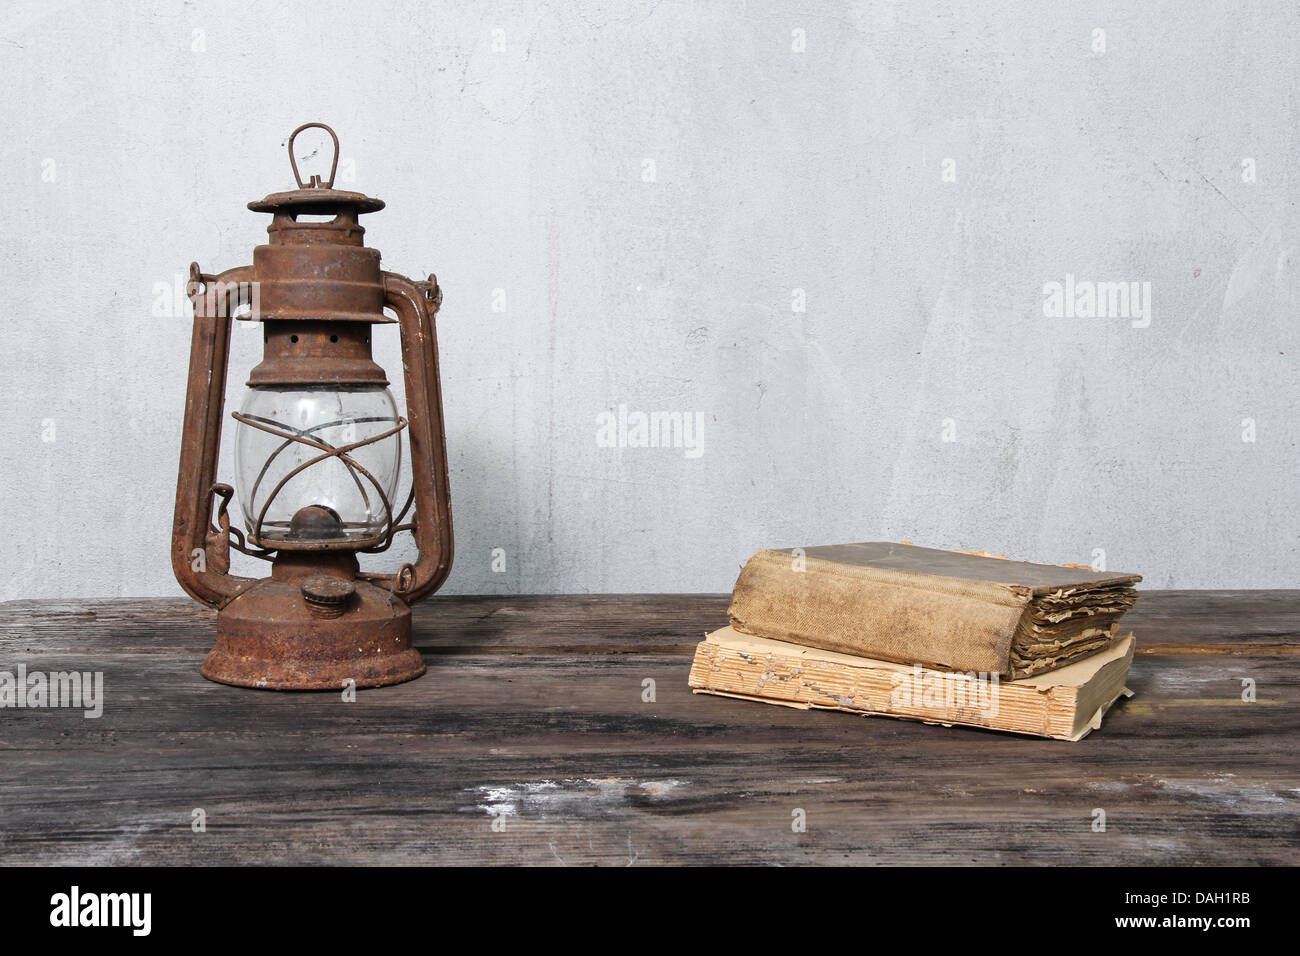 rustic oil lamp on wooden table and old books - Stock Image